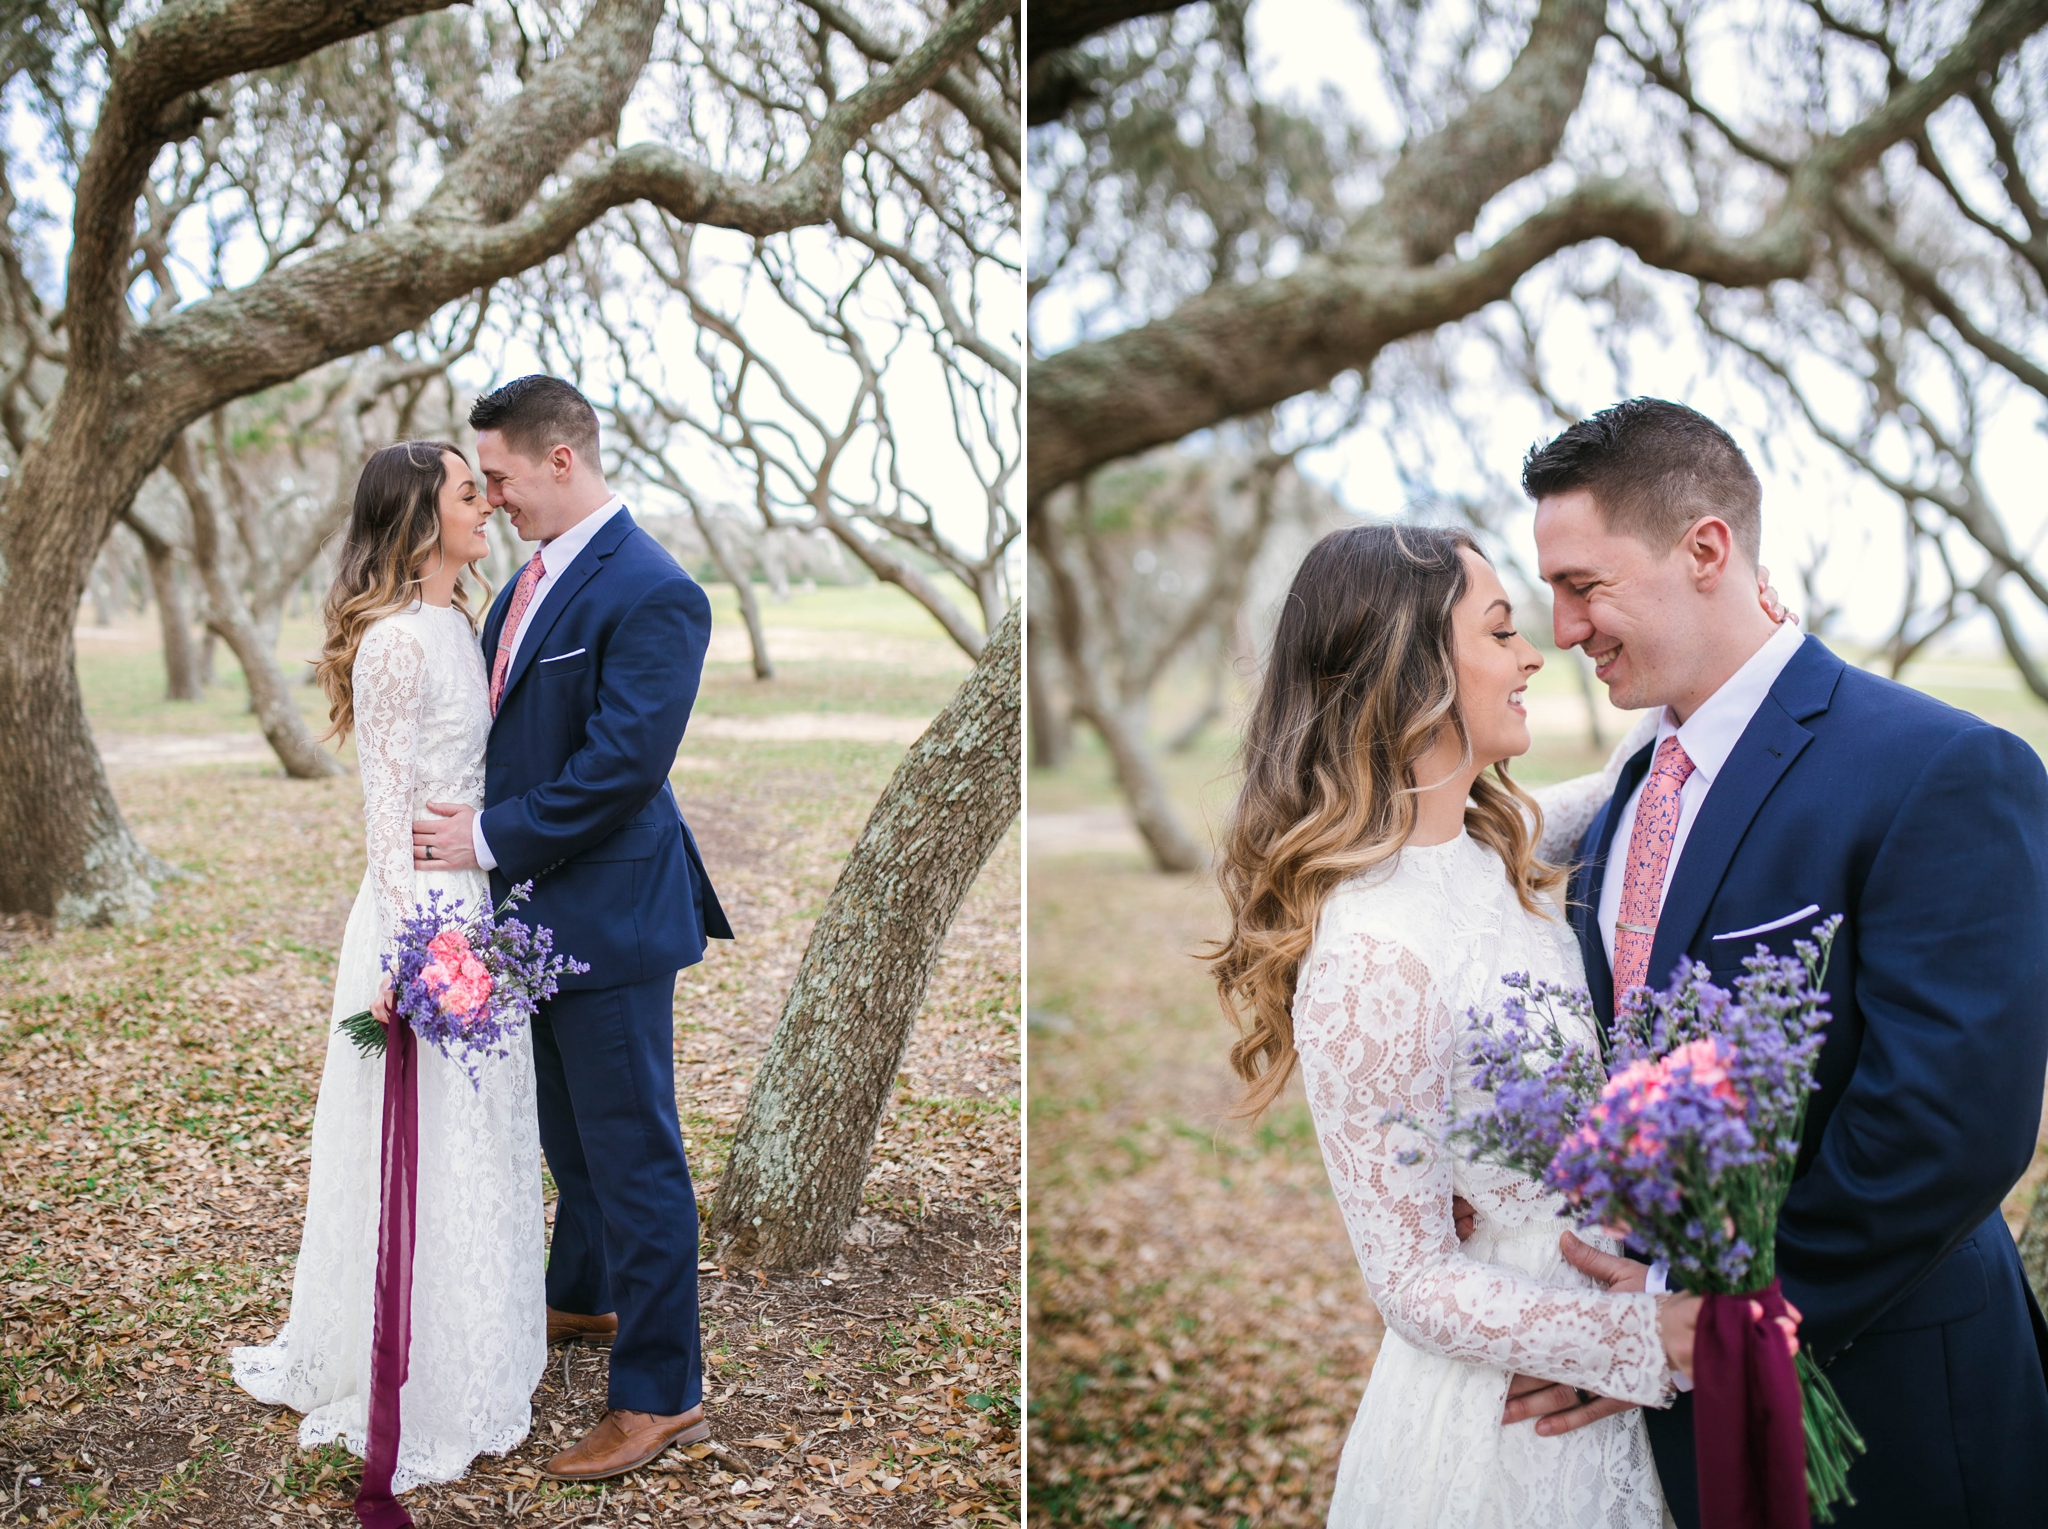 Beach Elopement Photography within the oak trees - dress by asos with purple and pink flowers and navy suit - oahu hawaii wedding photographer